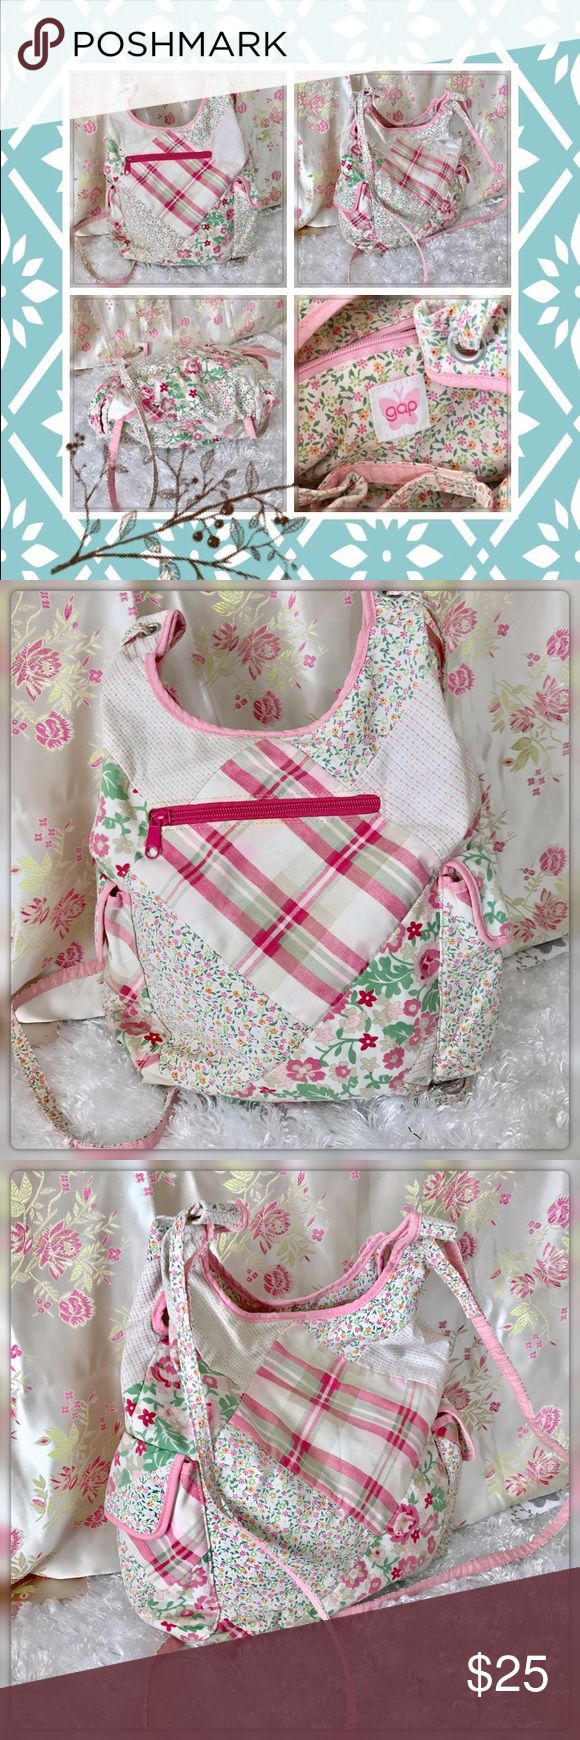 "Gap Pink Patchwork Shabby Chic Backpack 13"" x 13"" side pockets and front Zipped Pocket. Gently used with no flaws GAP Bags Backpacks"